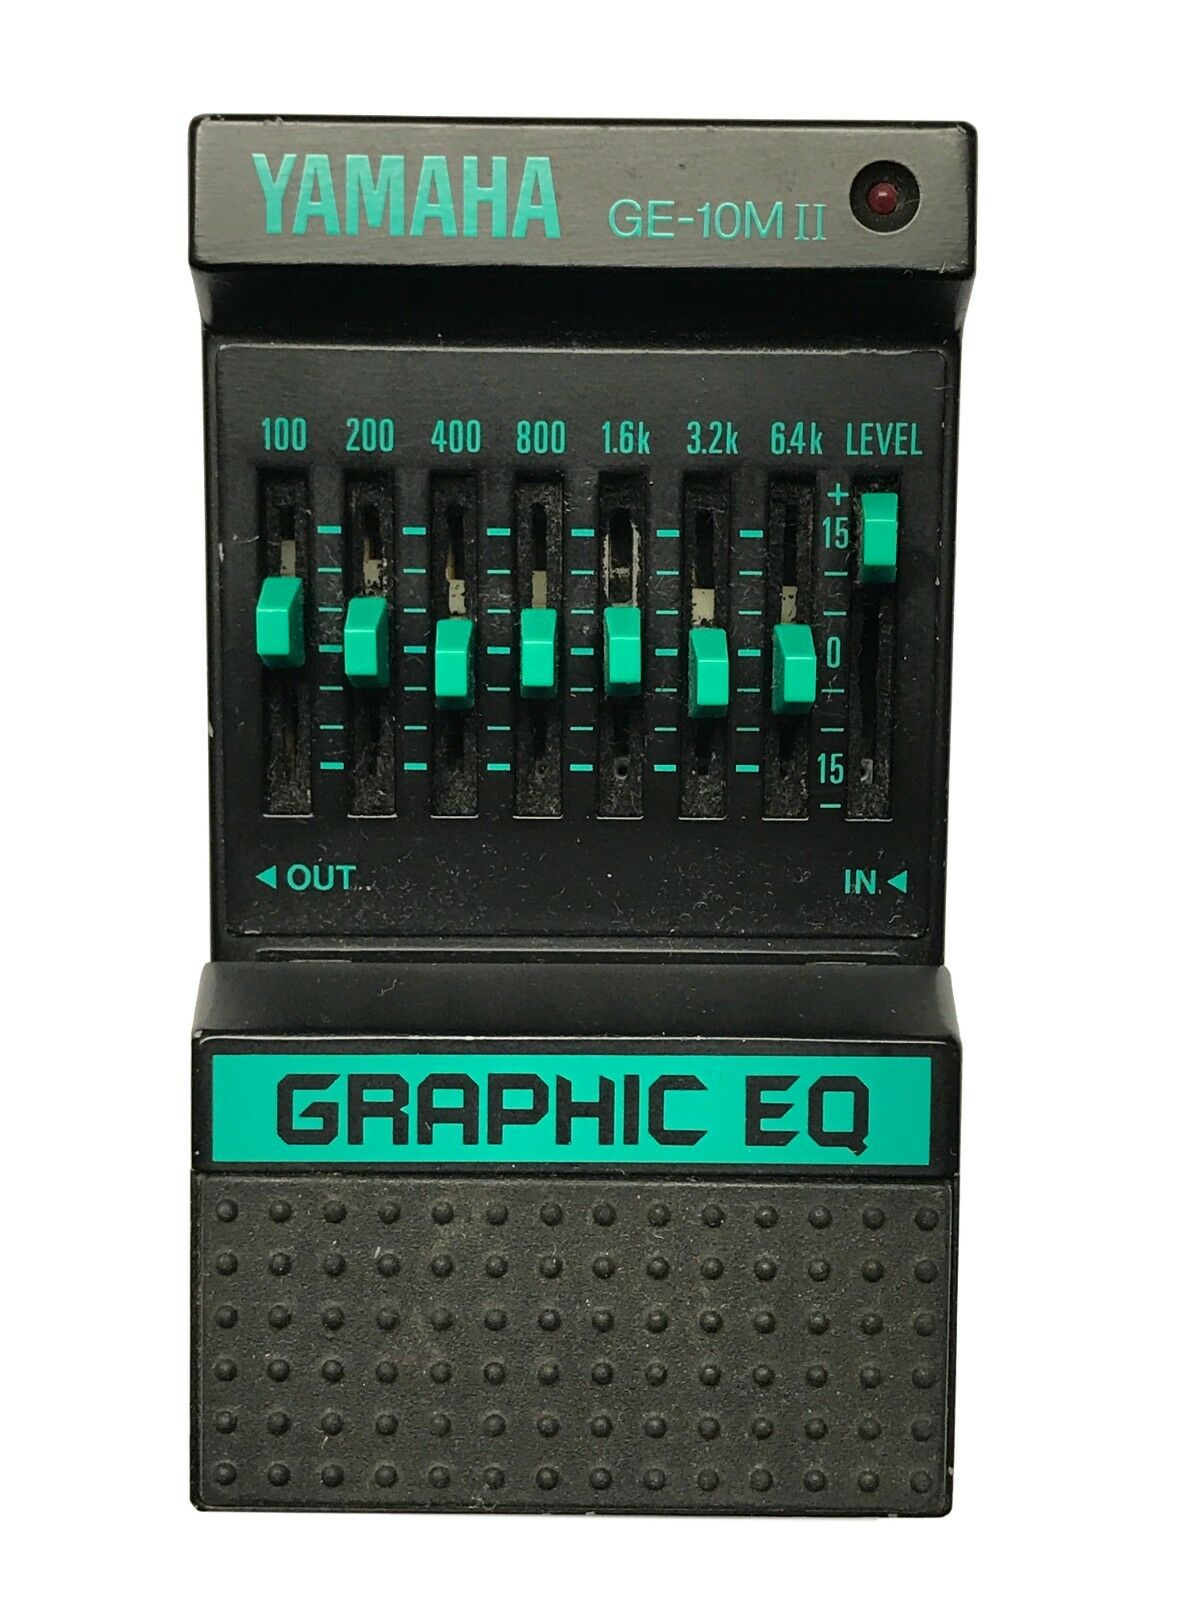 Yamaha GE-10M-II, Graphic EQ, Made in Japan, 80's, Vintage Guitar Effect Pedal